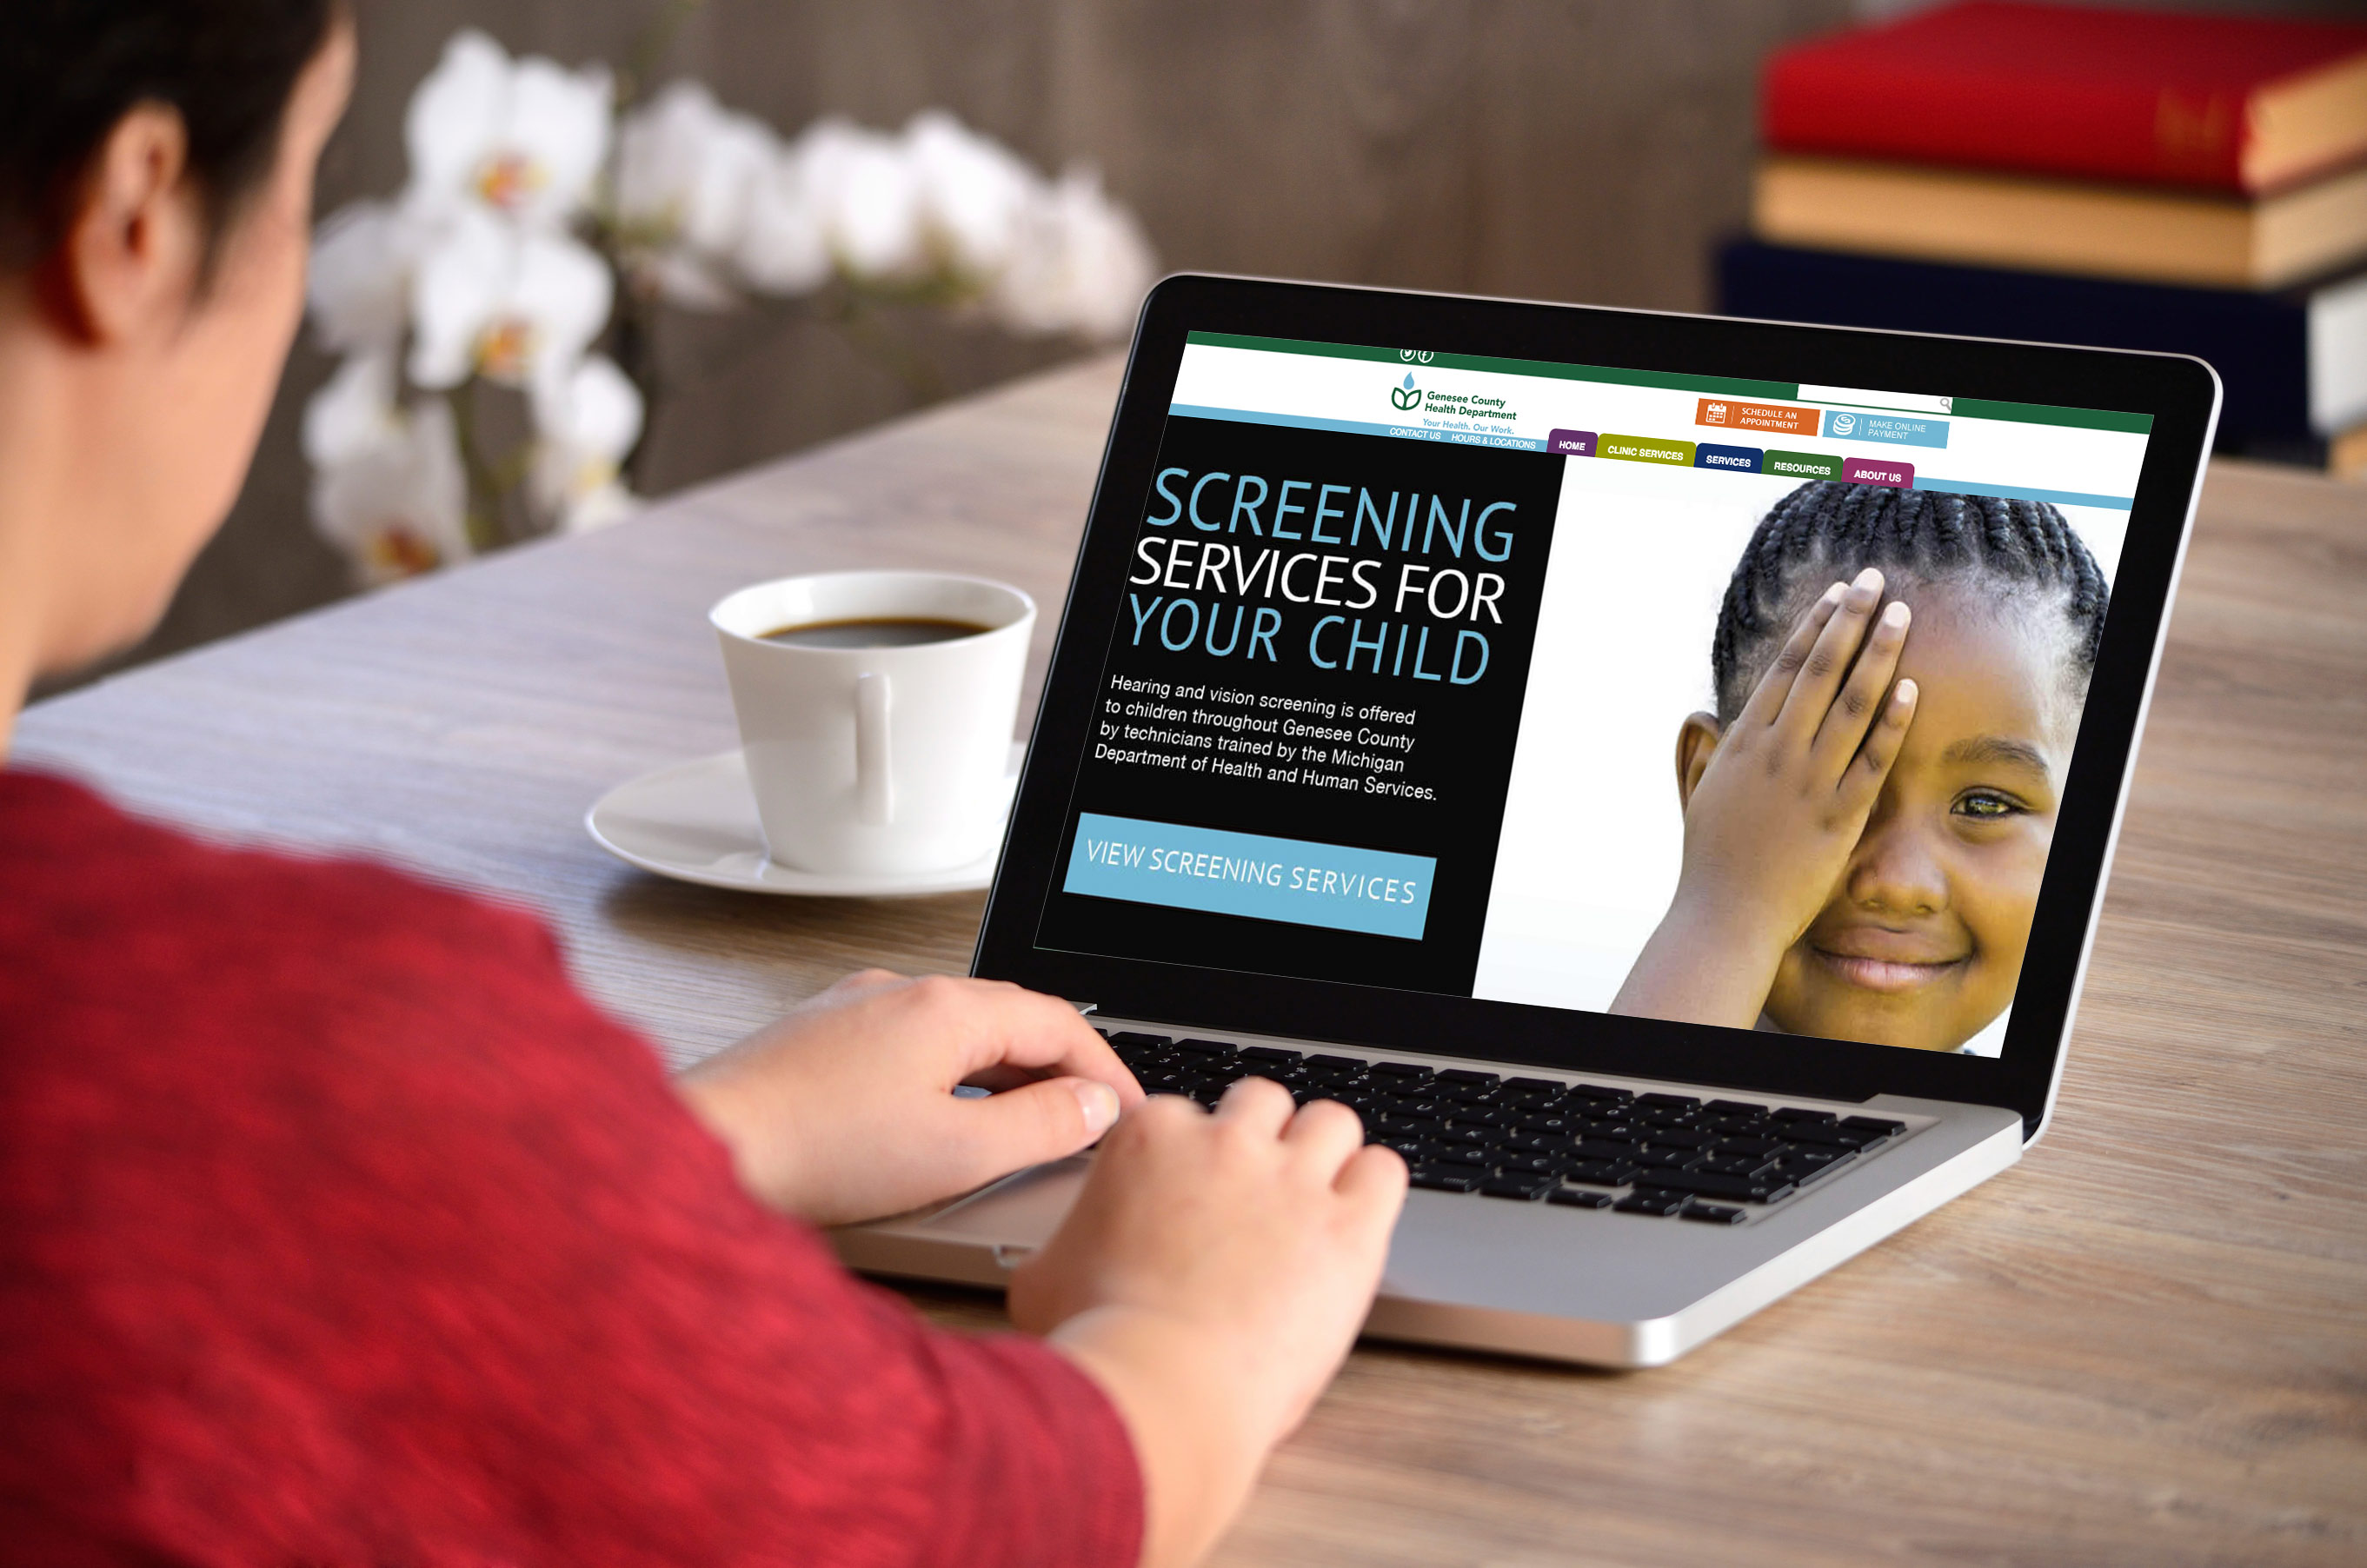 Image Of The Complete Eye Care Digital Marketing Project